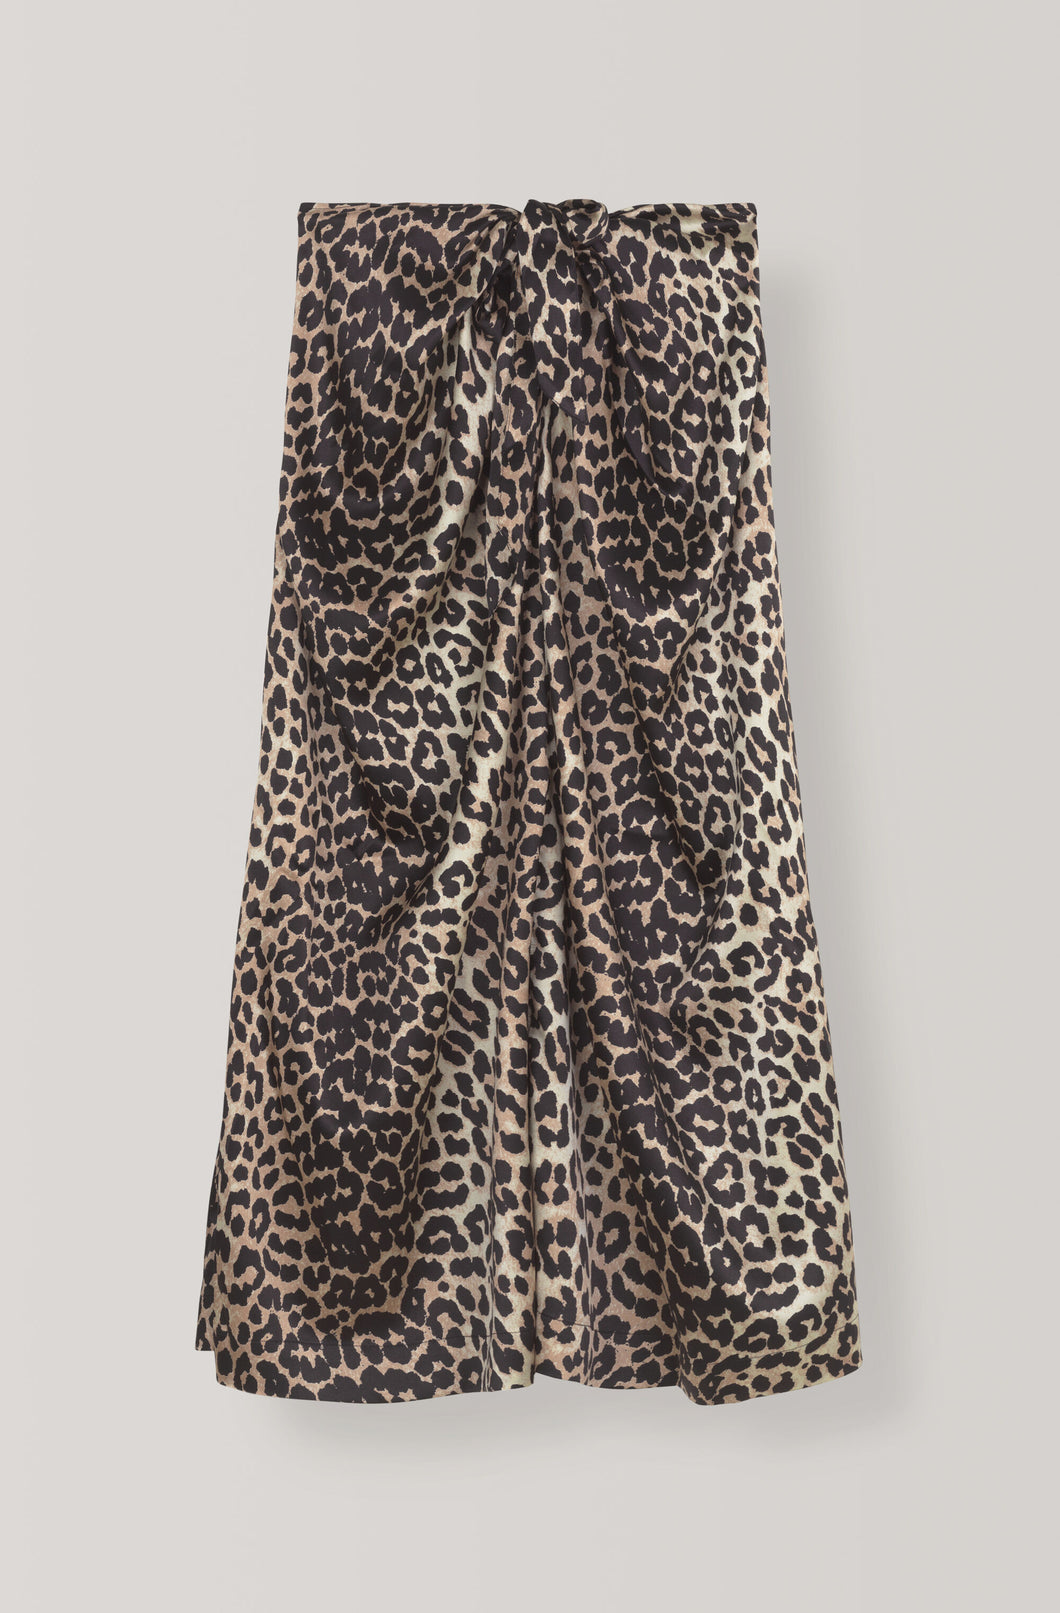 Silk Stretch Skirt - Leopard